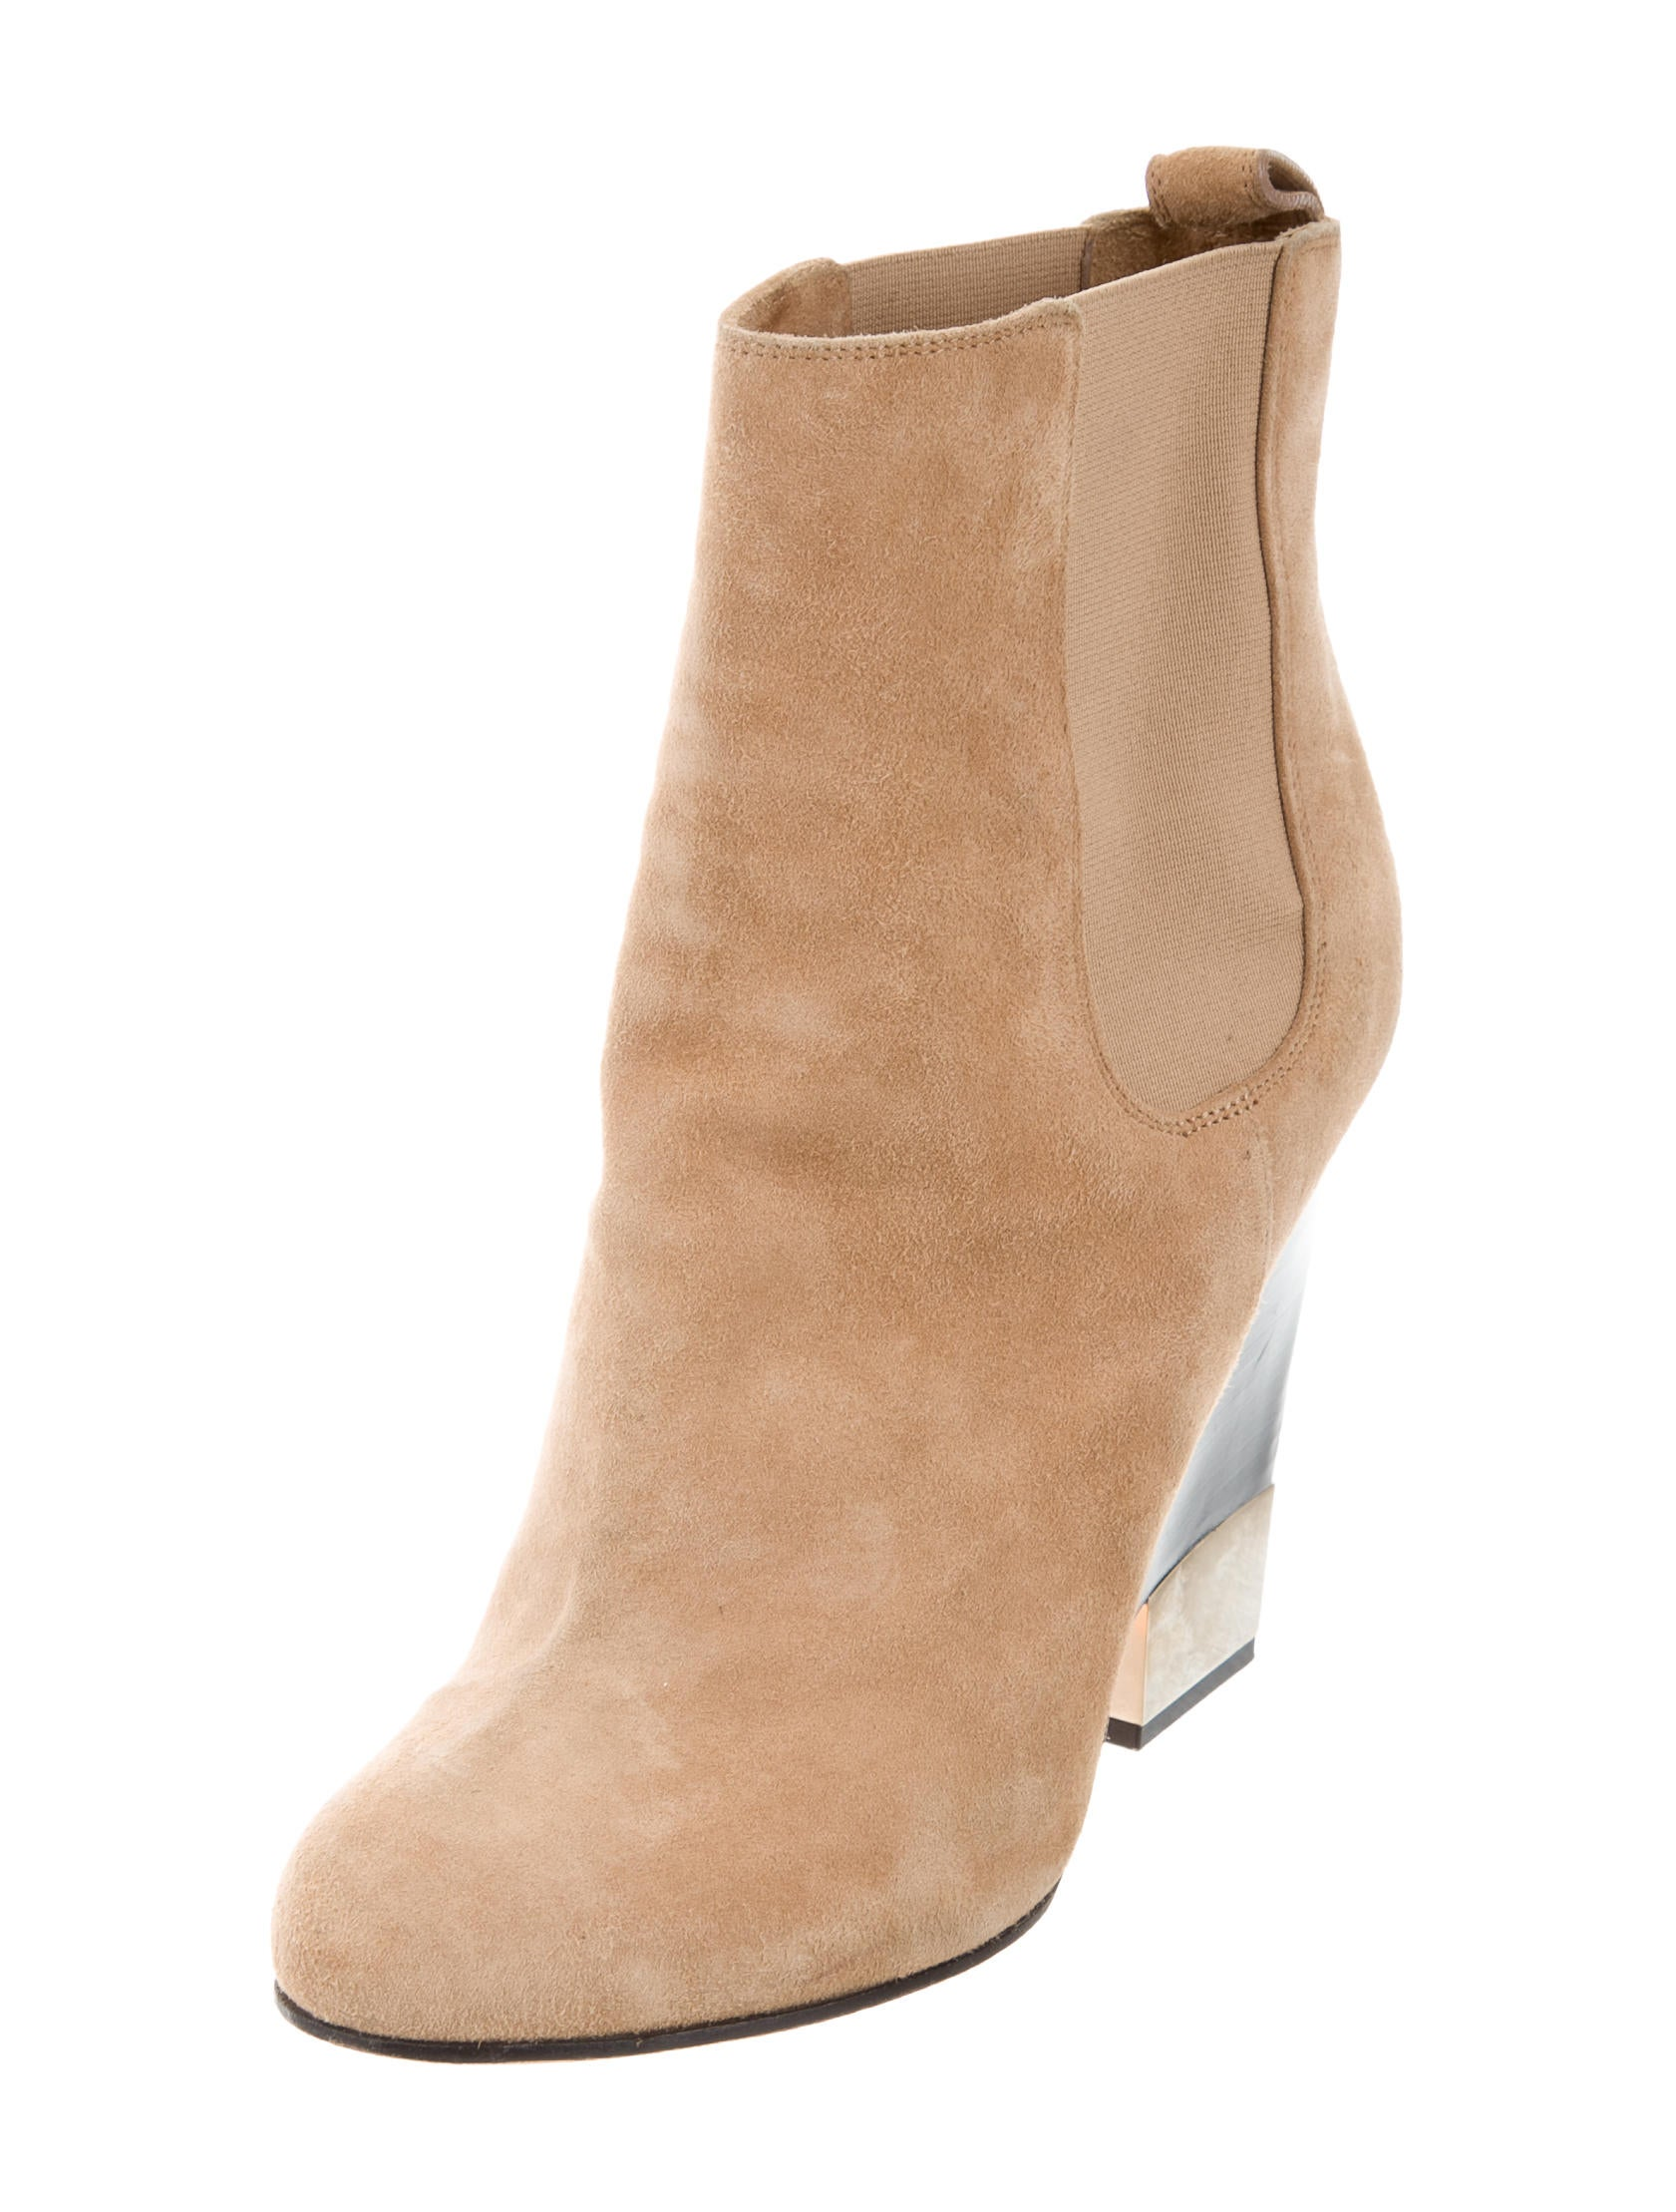 givenchy suede wedge ankle boots shoes giv43254 the